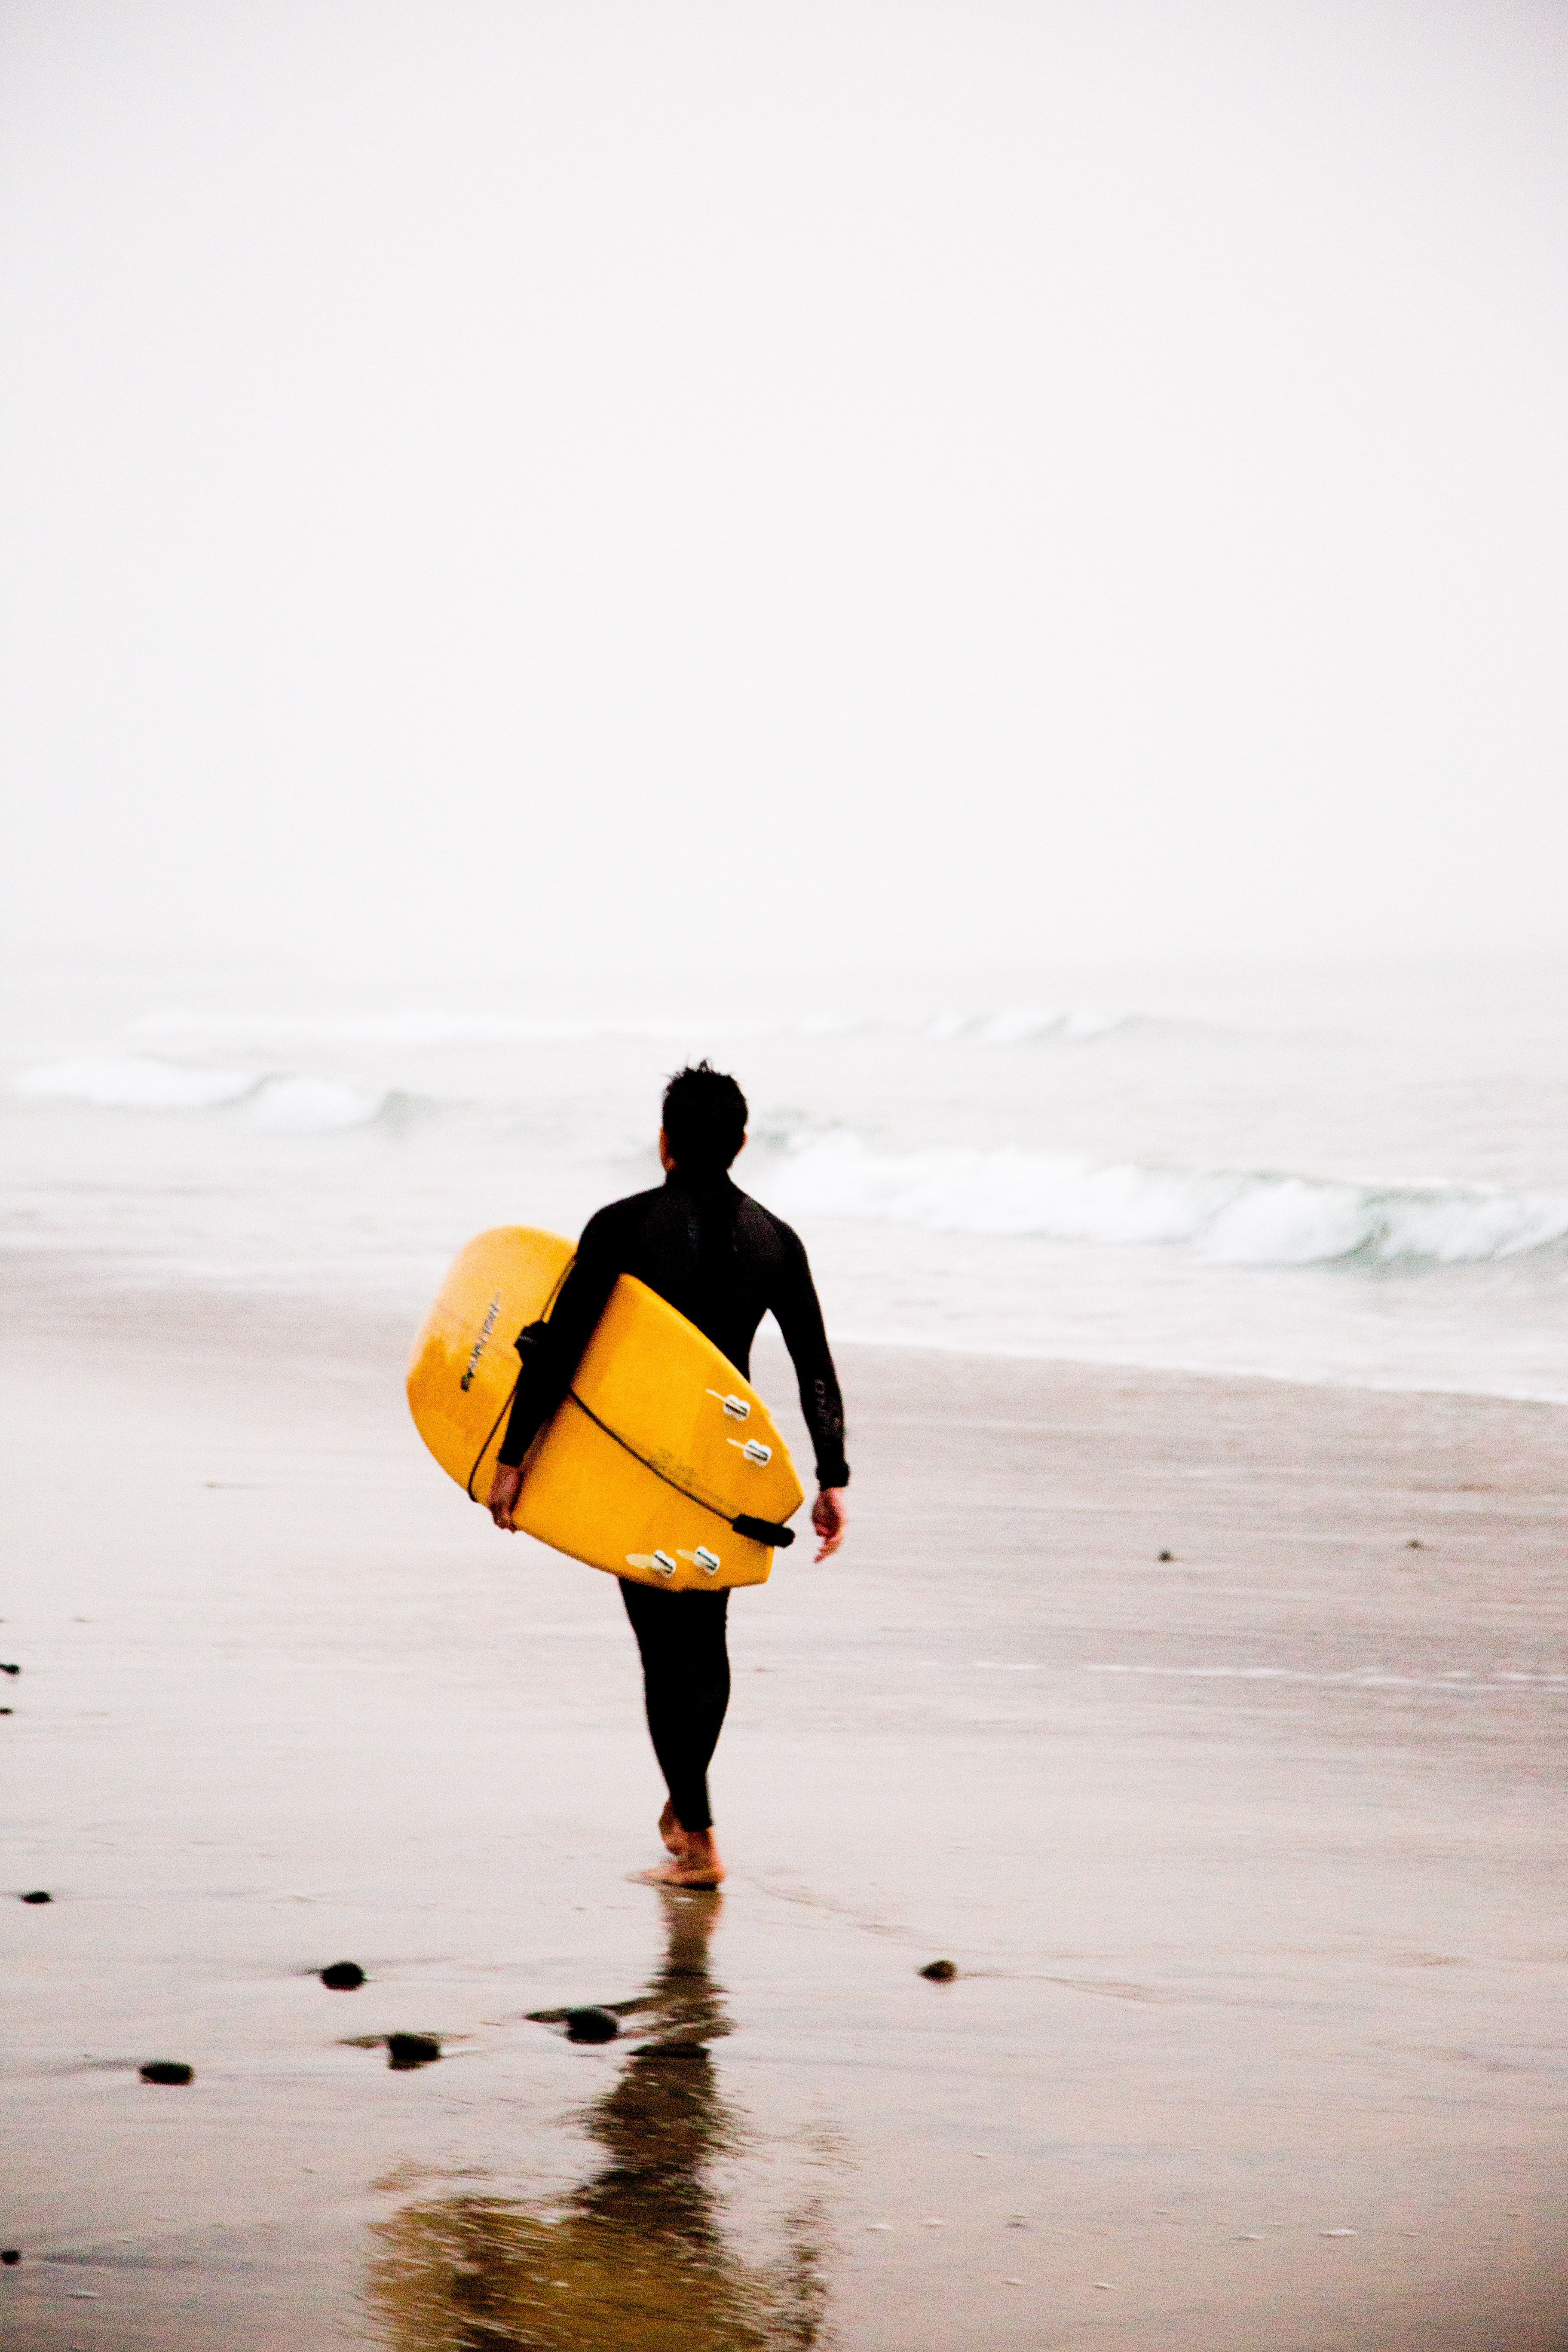 man holding yellow surfboard while walking on seashore during daytime